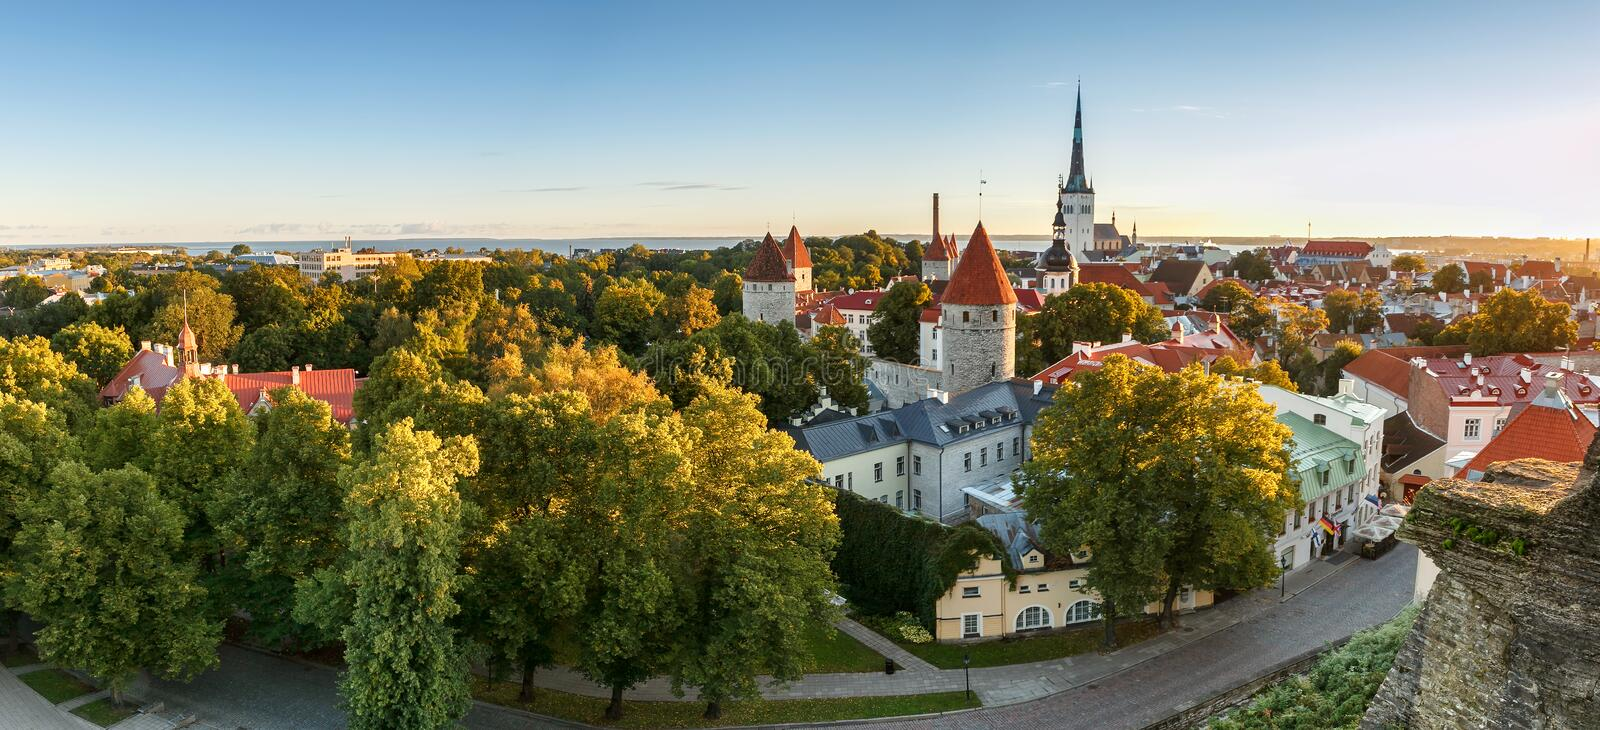 Tallinn skyline,Estonia stock images